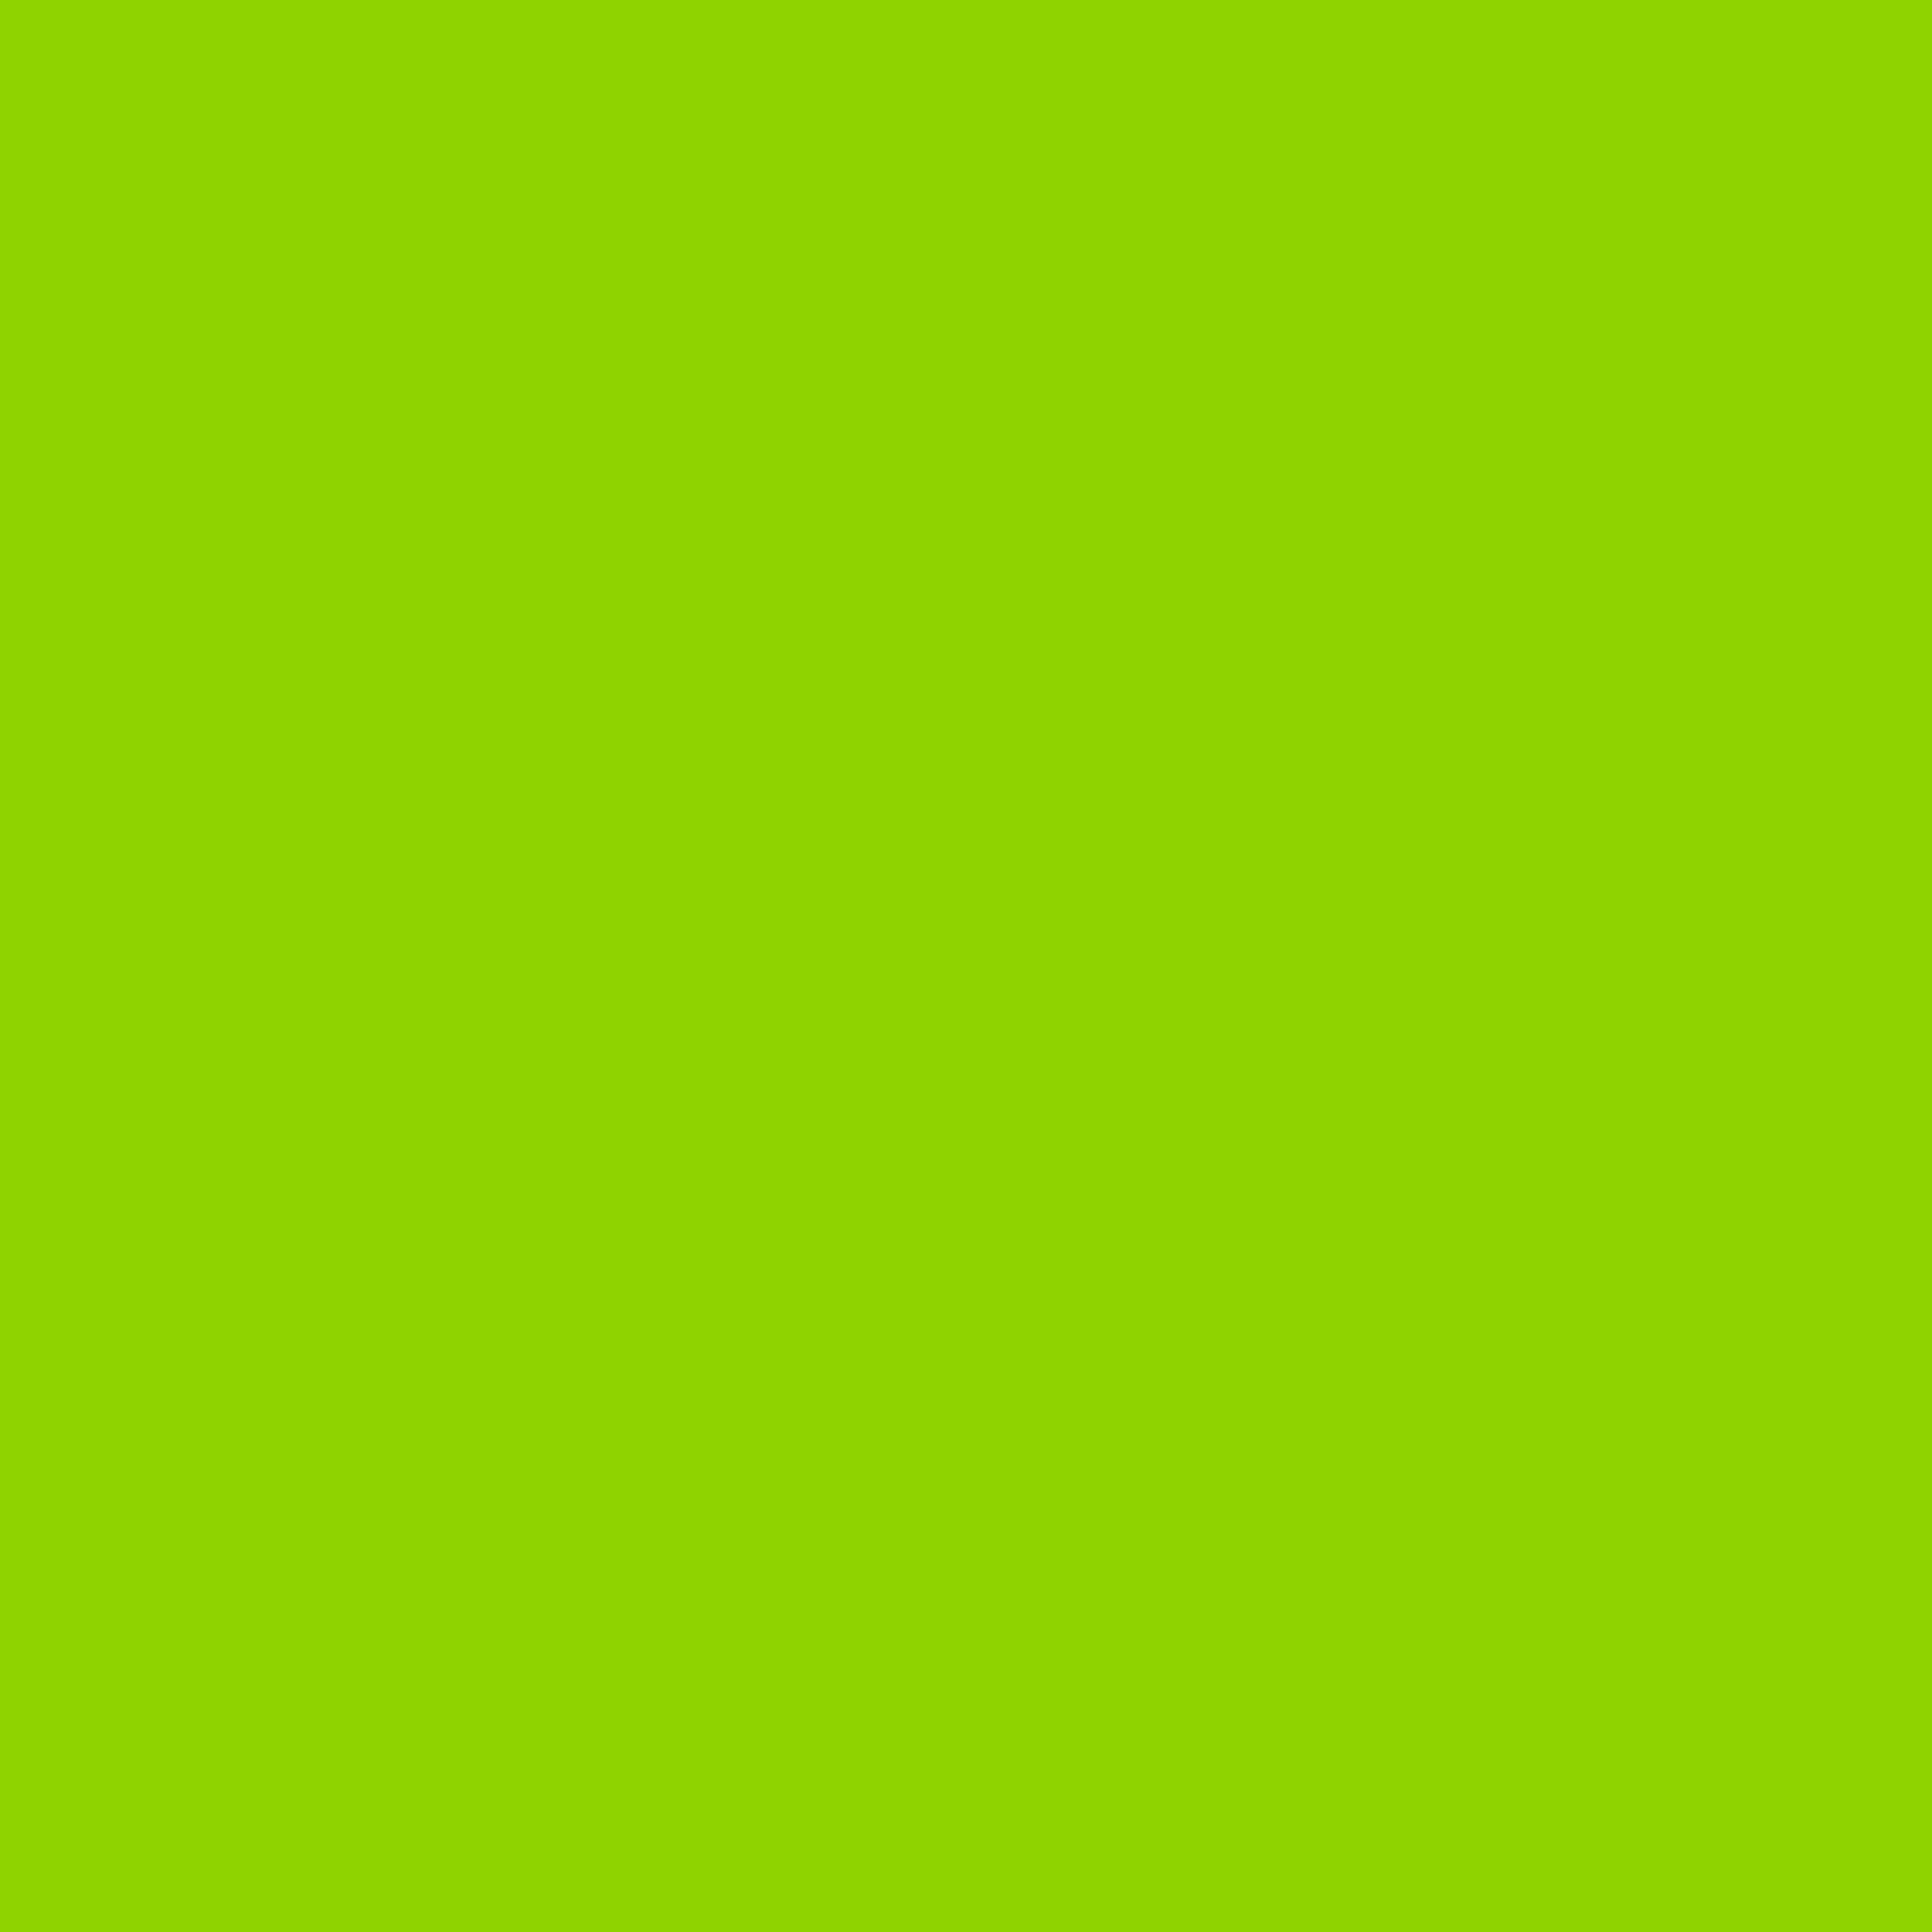 2732x2732 Sheen Green Solid Color Background